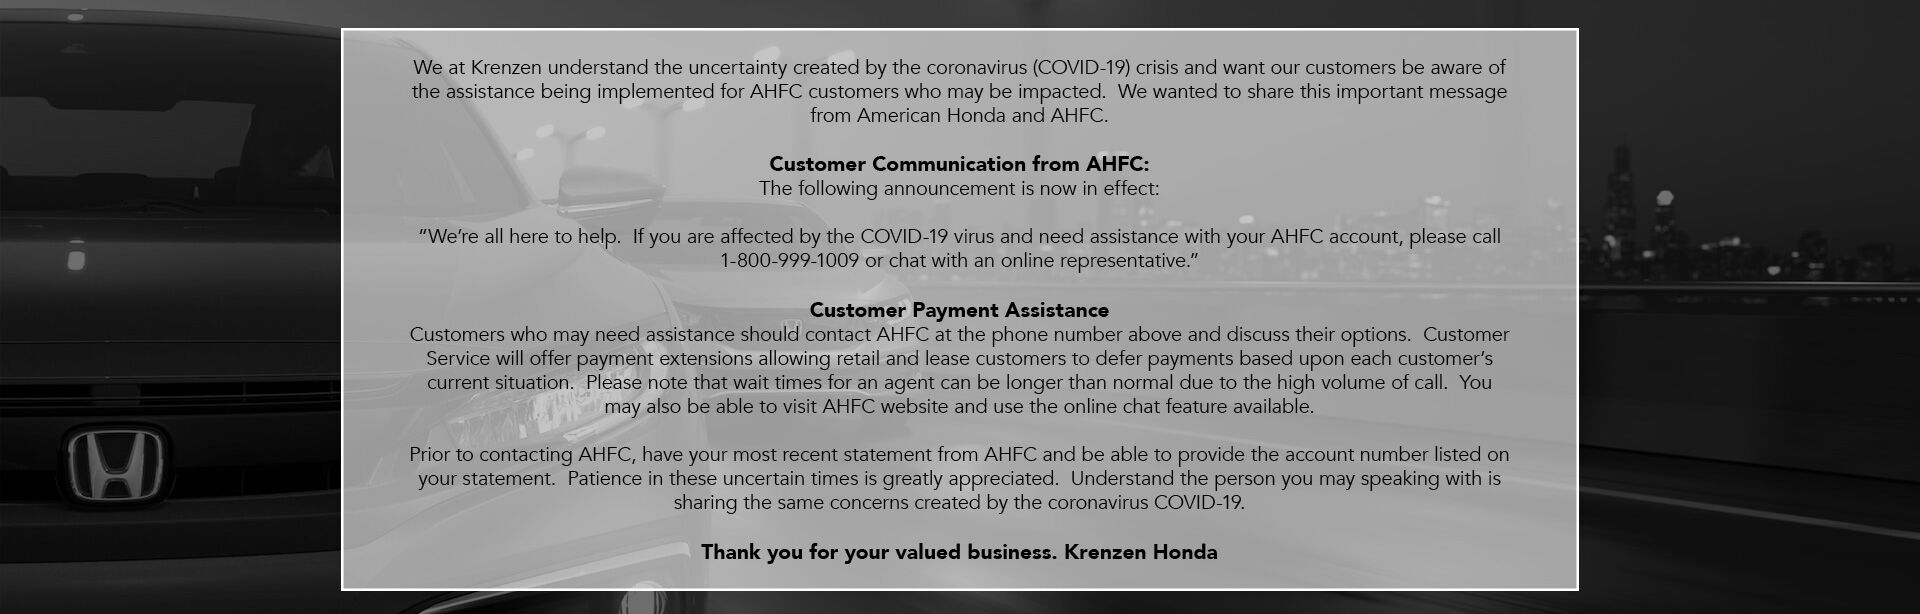 Customer Payment Assistance